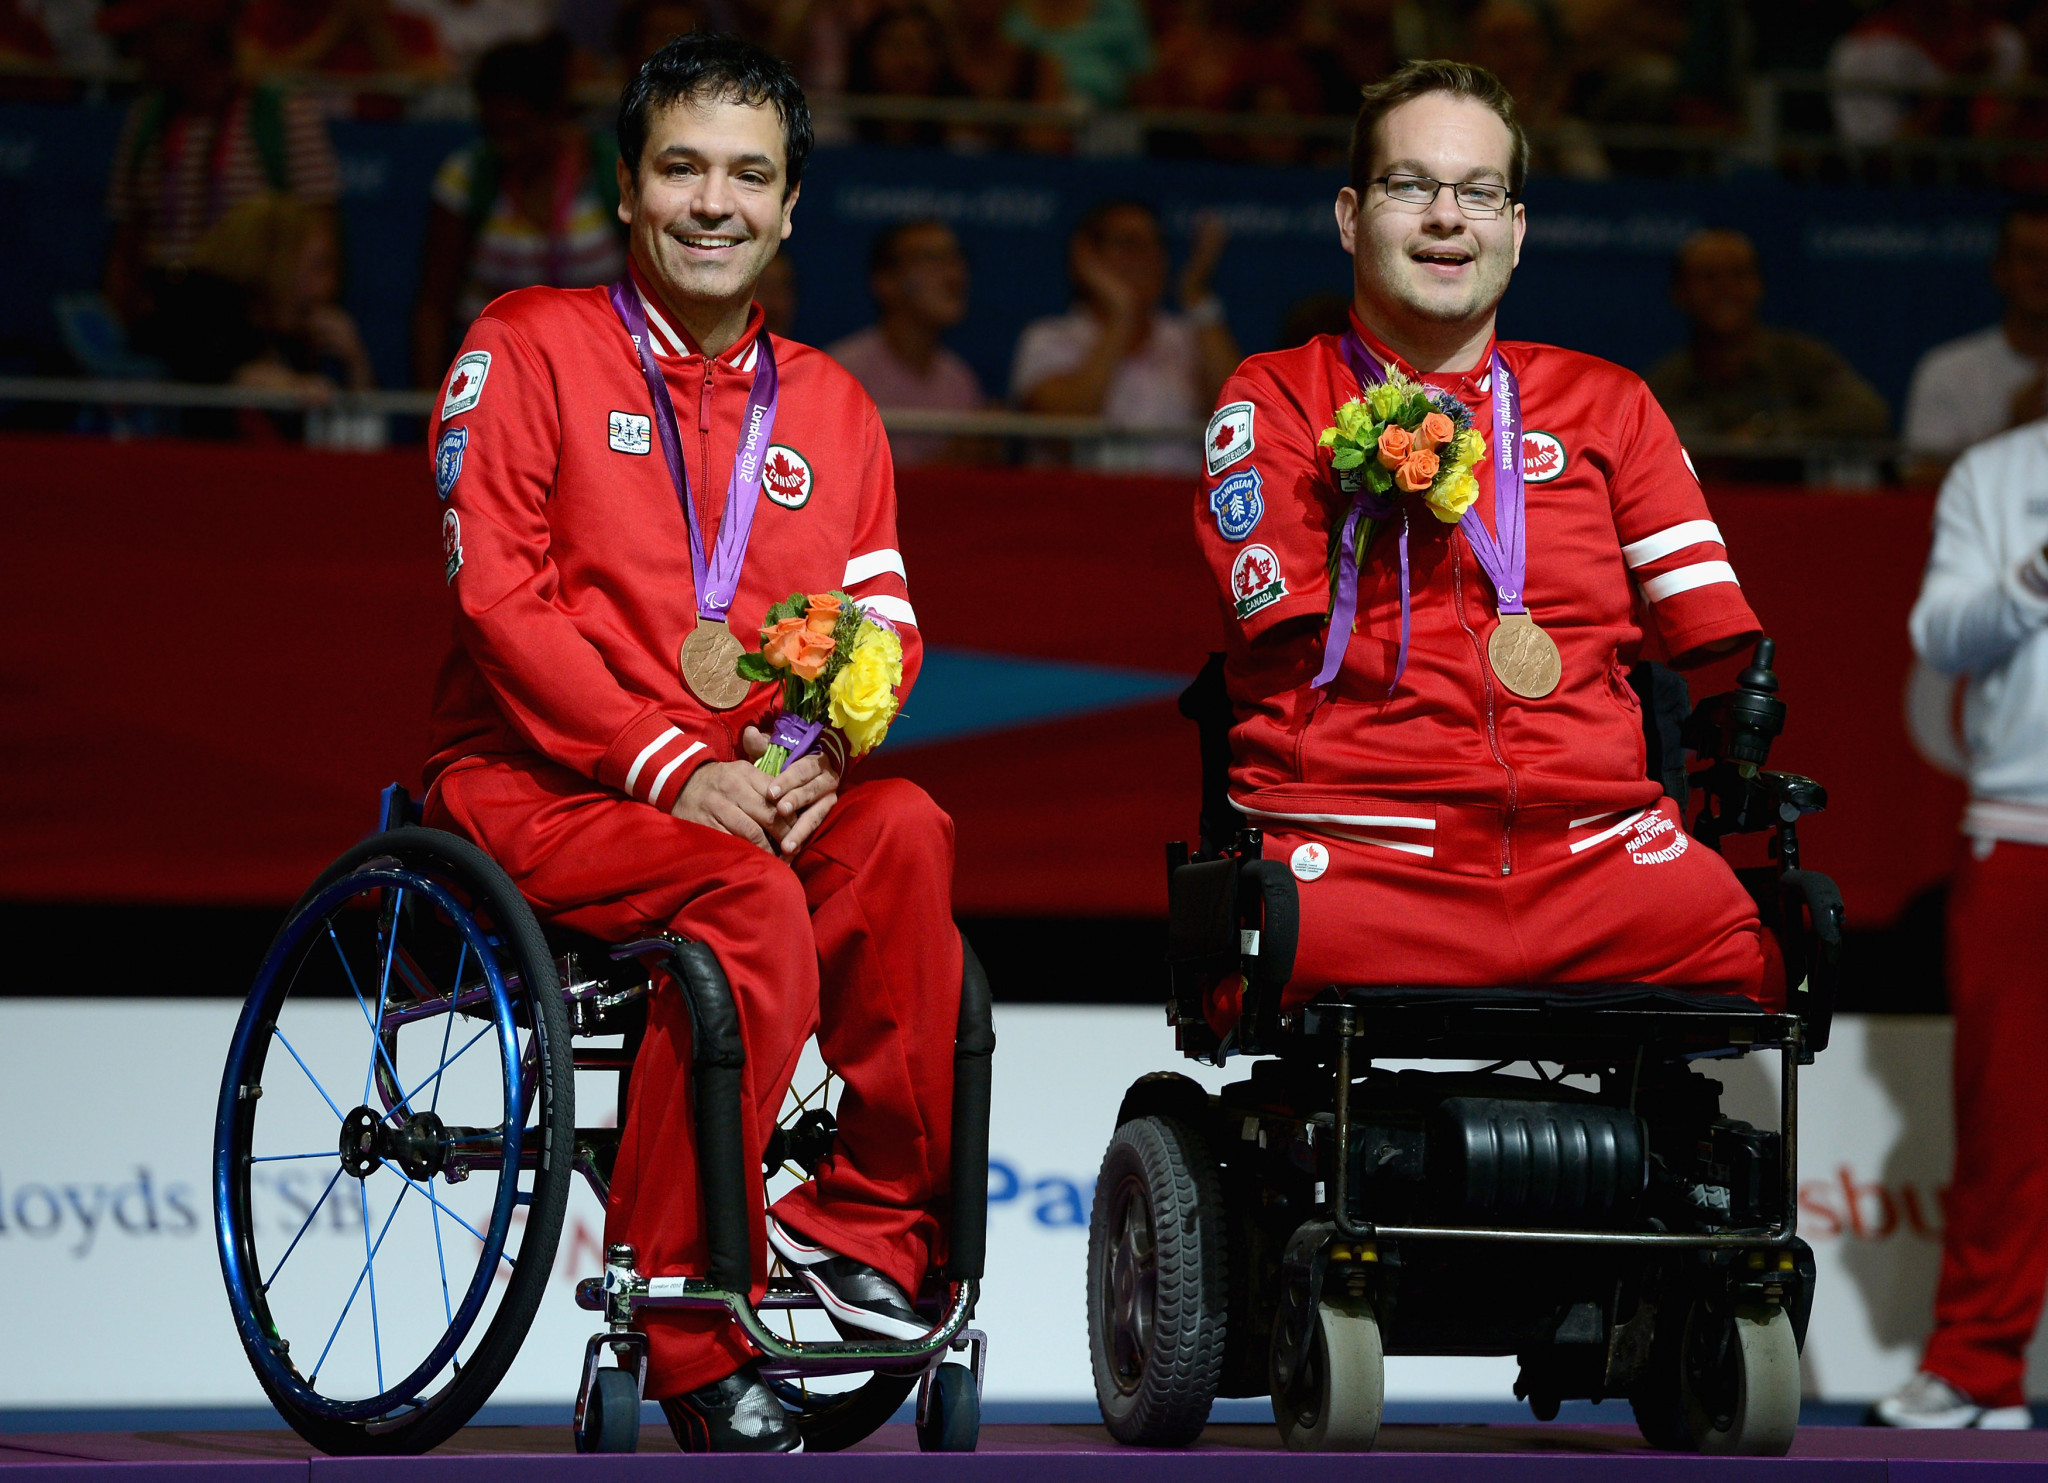 Josh Vander Vies finished with a boccia bronze medal at London 2012 ©Getty Images